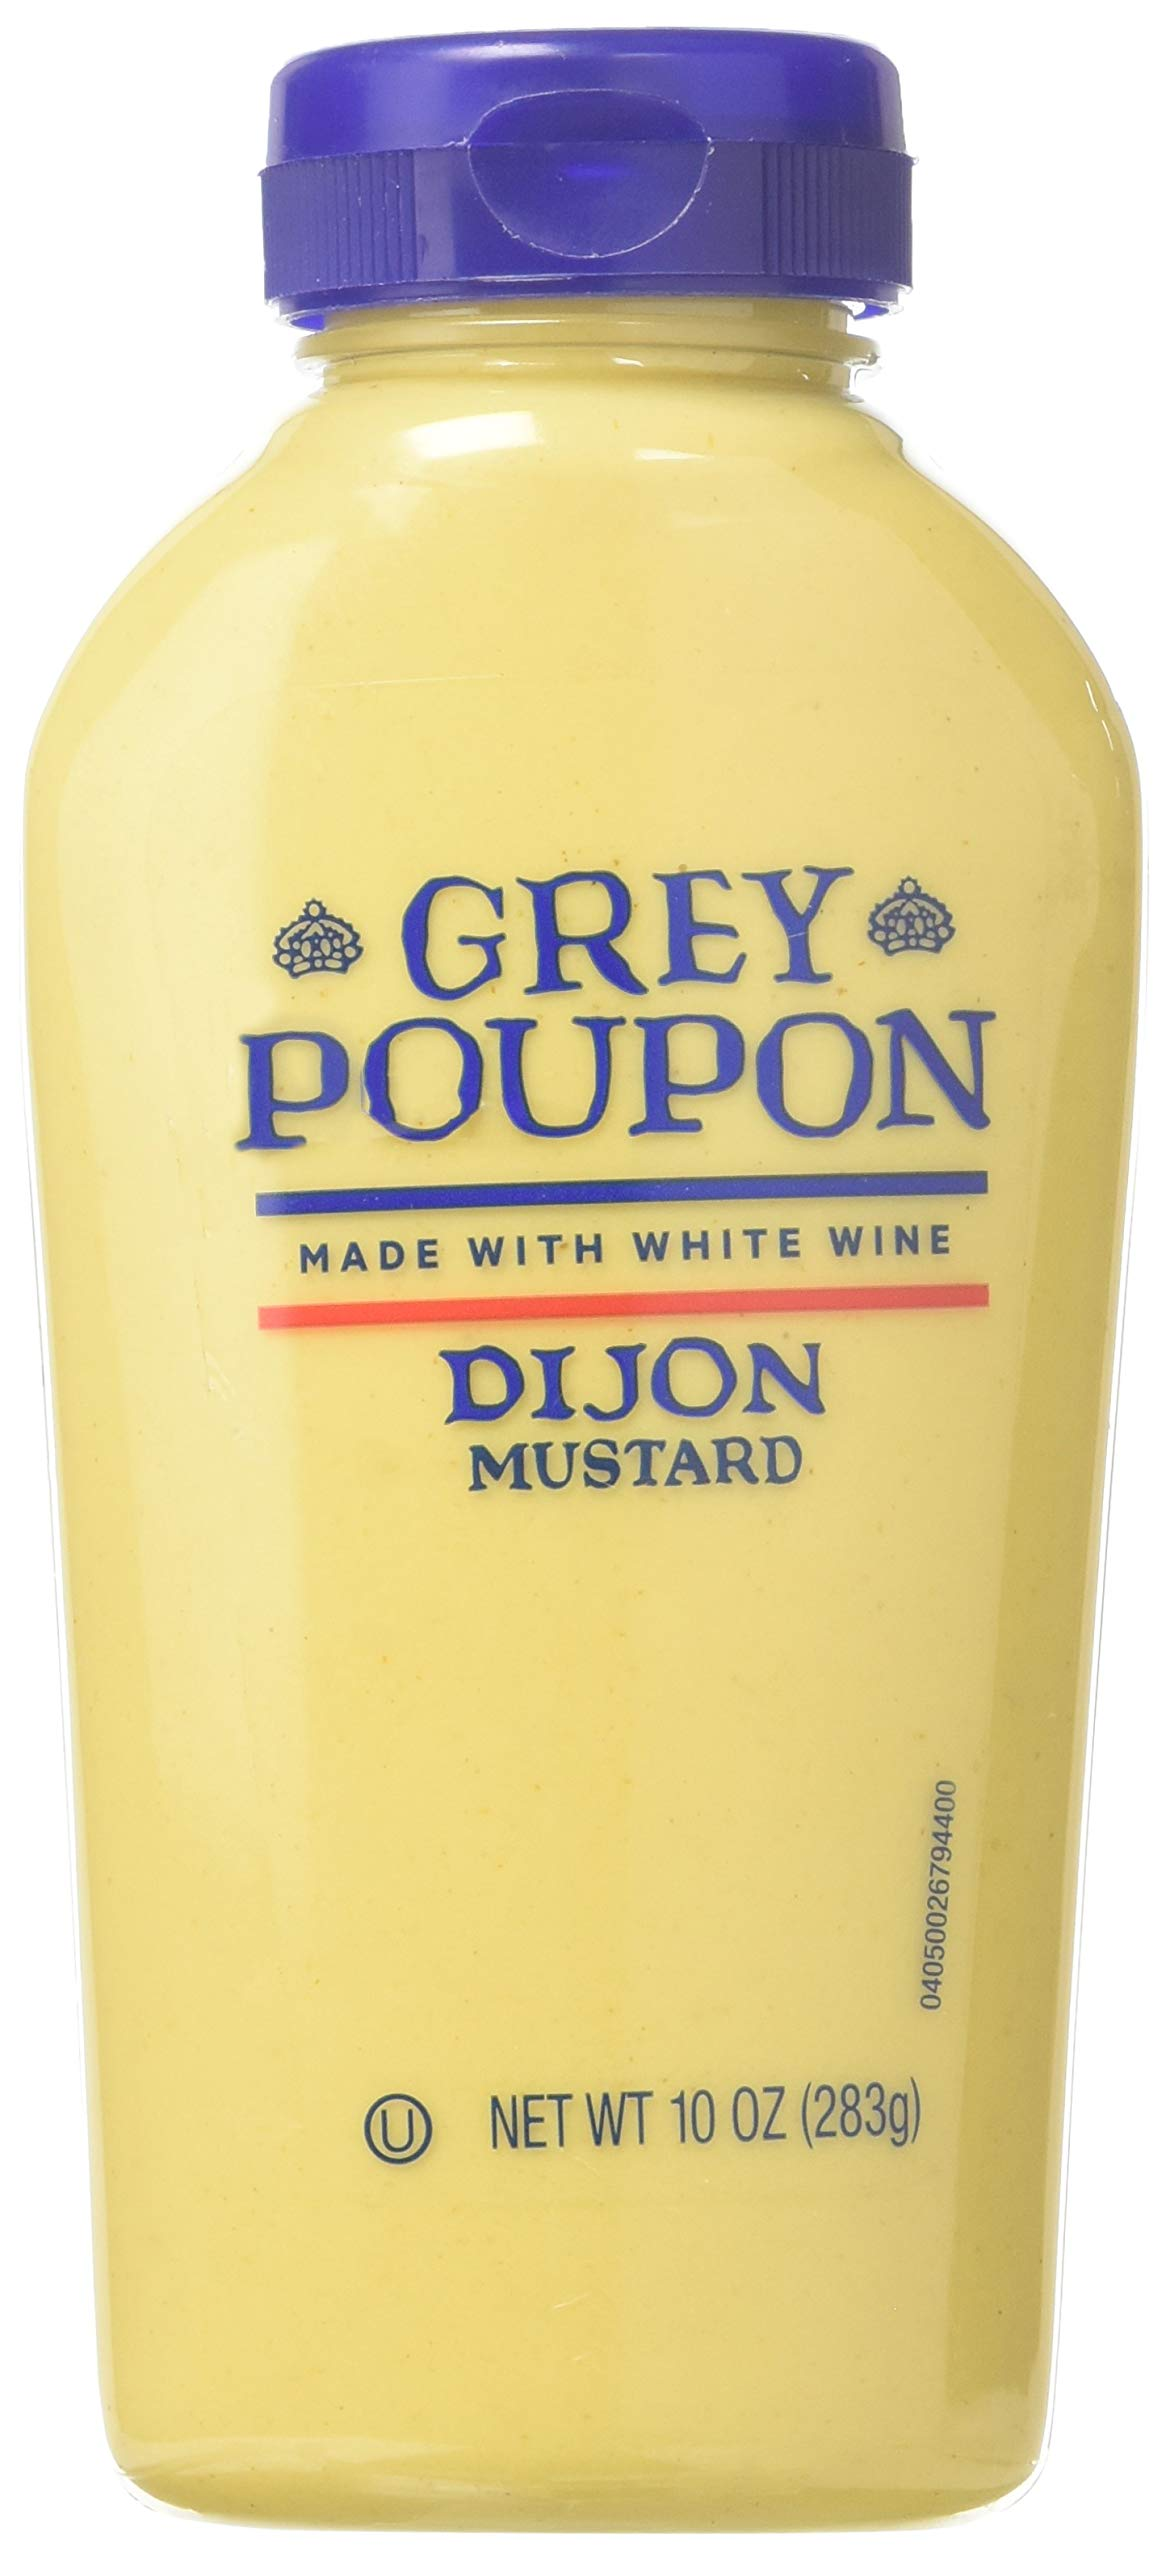 Grey Poupon Dijon Mustard (10oz Bottle) 1 One 10 oz. bottle of Grey Poupon Dijon Mustard Grey Poupon Dijon Mustard uses the finest ingredients for a gourmet condiment #1 Grade Mustard Seeds and spices provide strong, delicious flavor